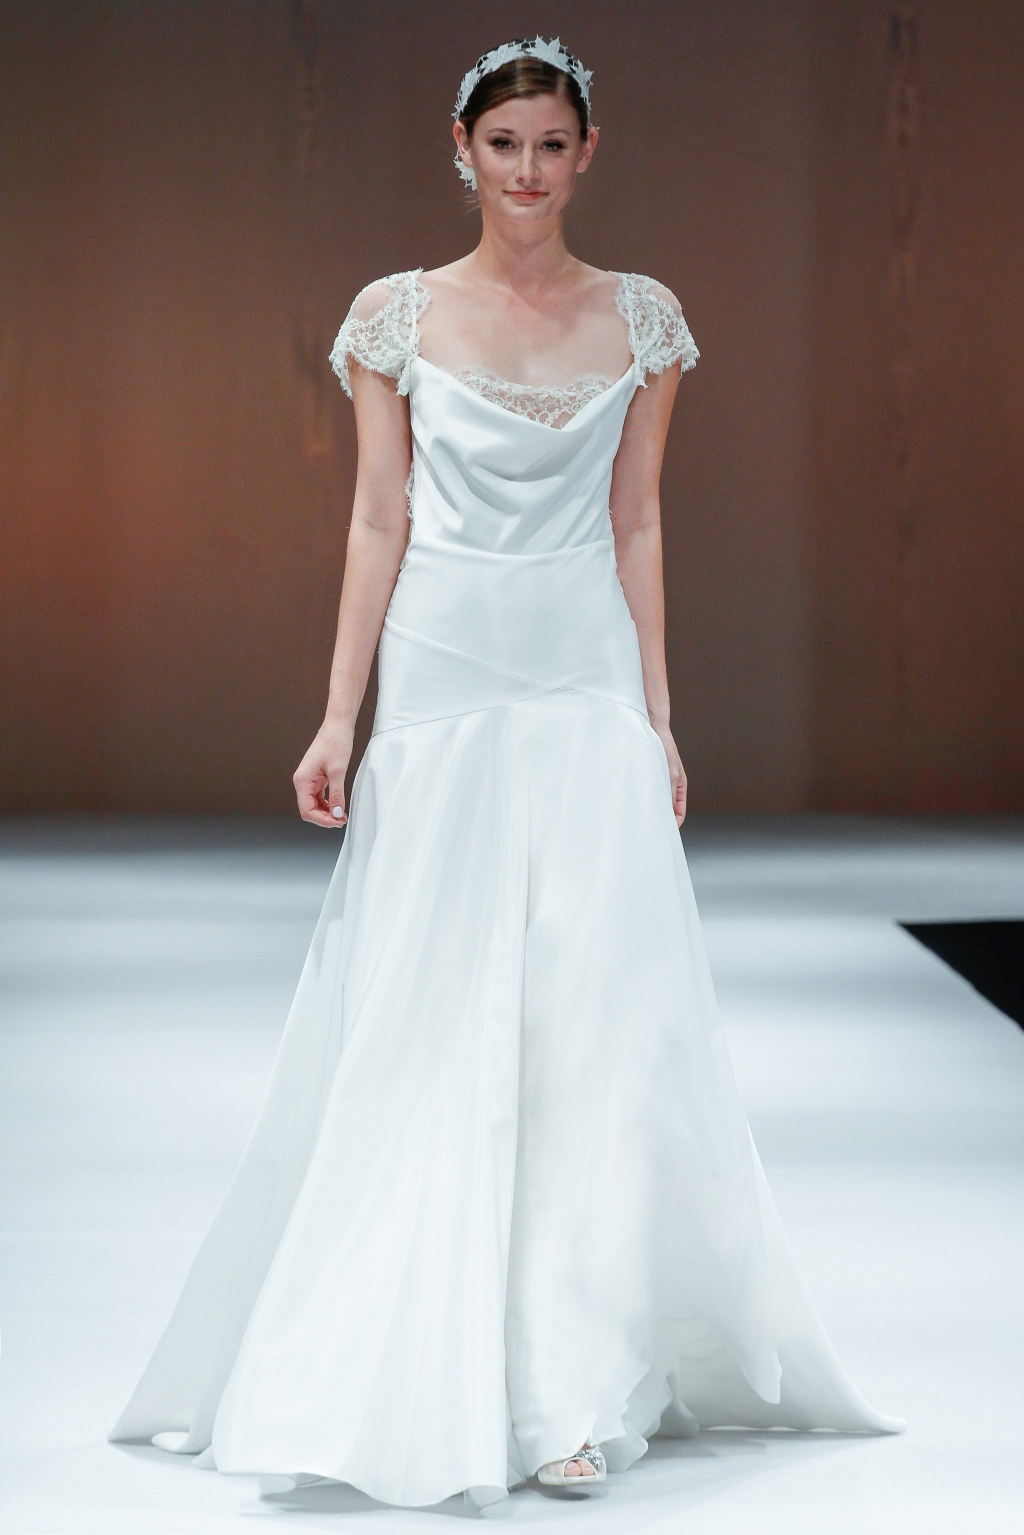 720697b43a Victoria KyriaKides 2014 Fall Bridal Collection